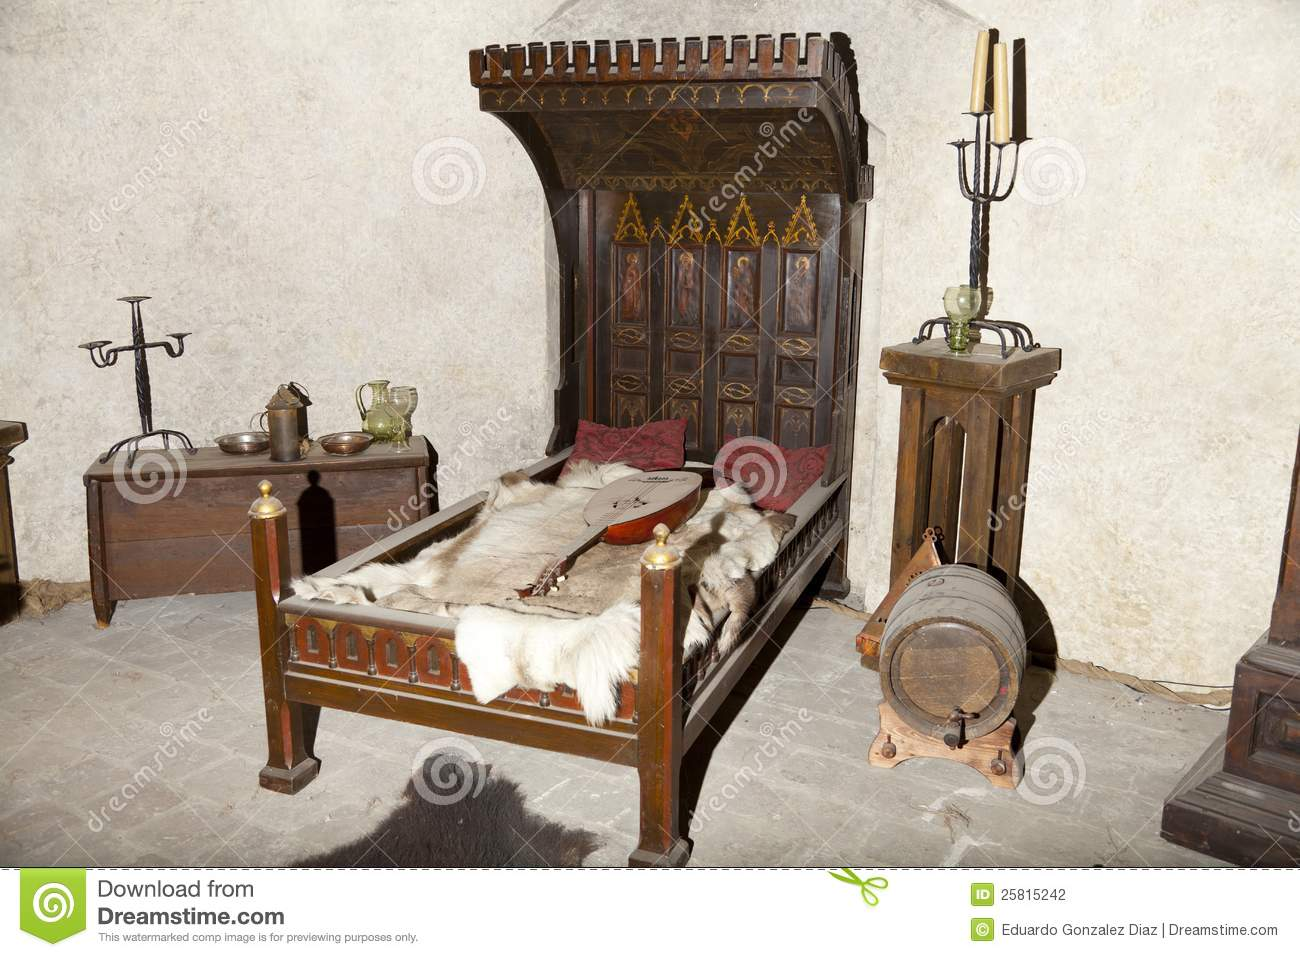 Medieval Bed Stock Photo Image Of Candelabra Noble 25815242